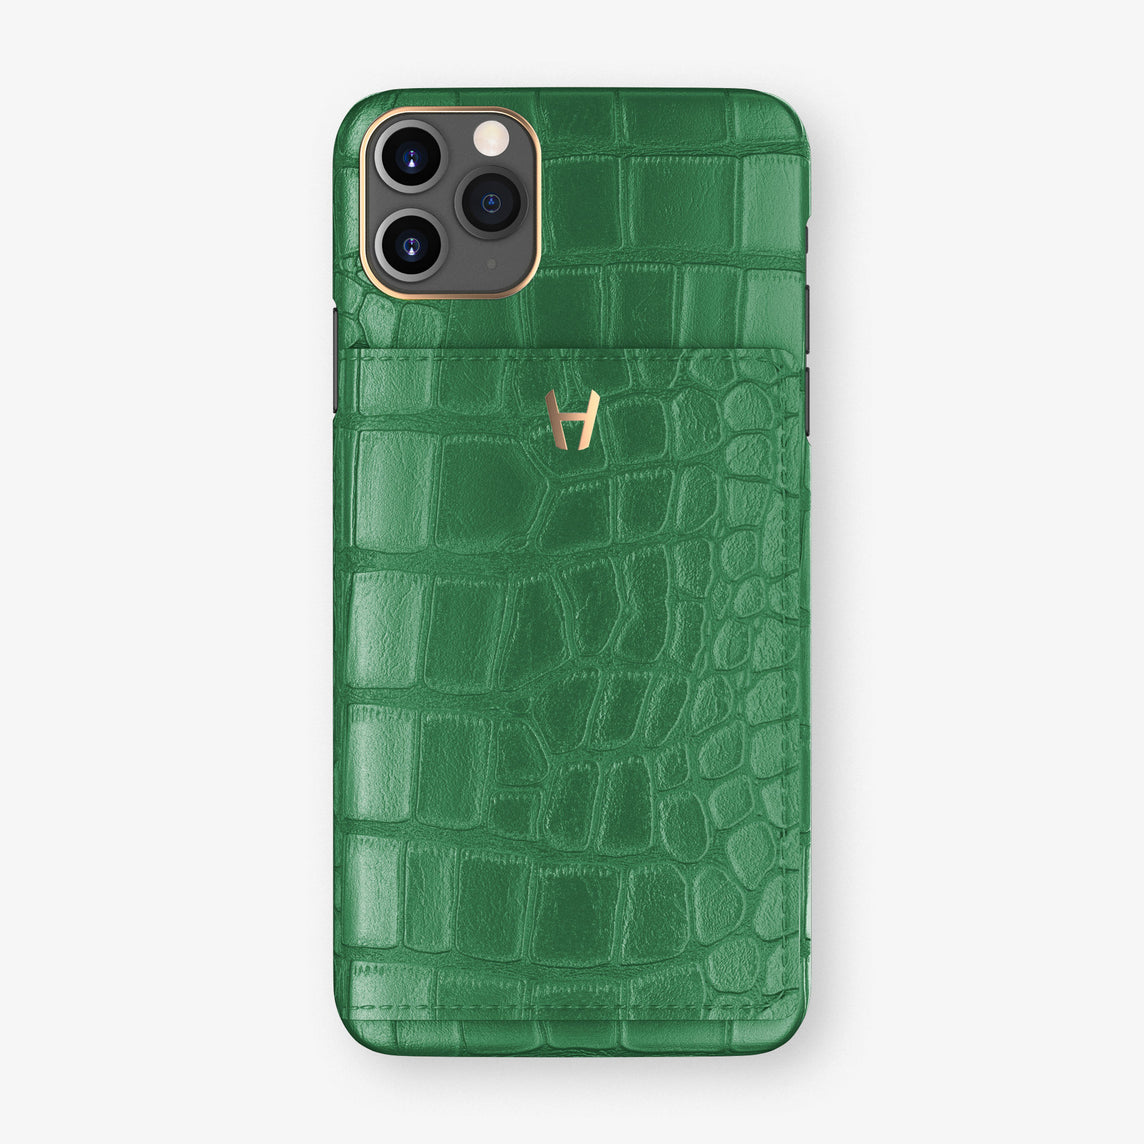 Alligator Card Holder Flap Case iPhone 11 Pro Max | Green Emerald - Rose Gold